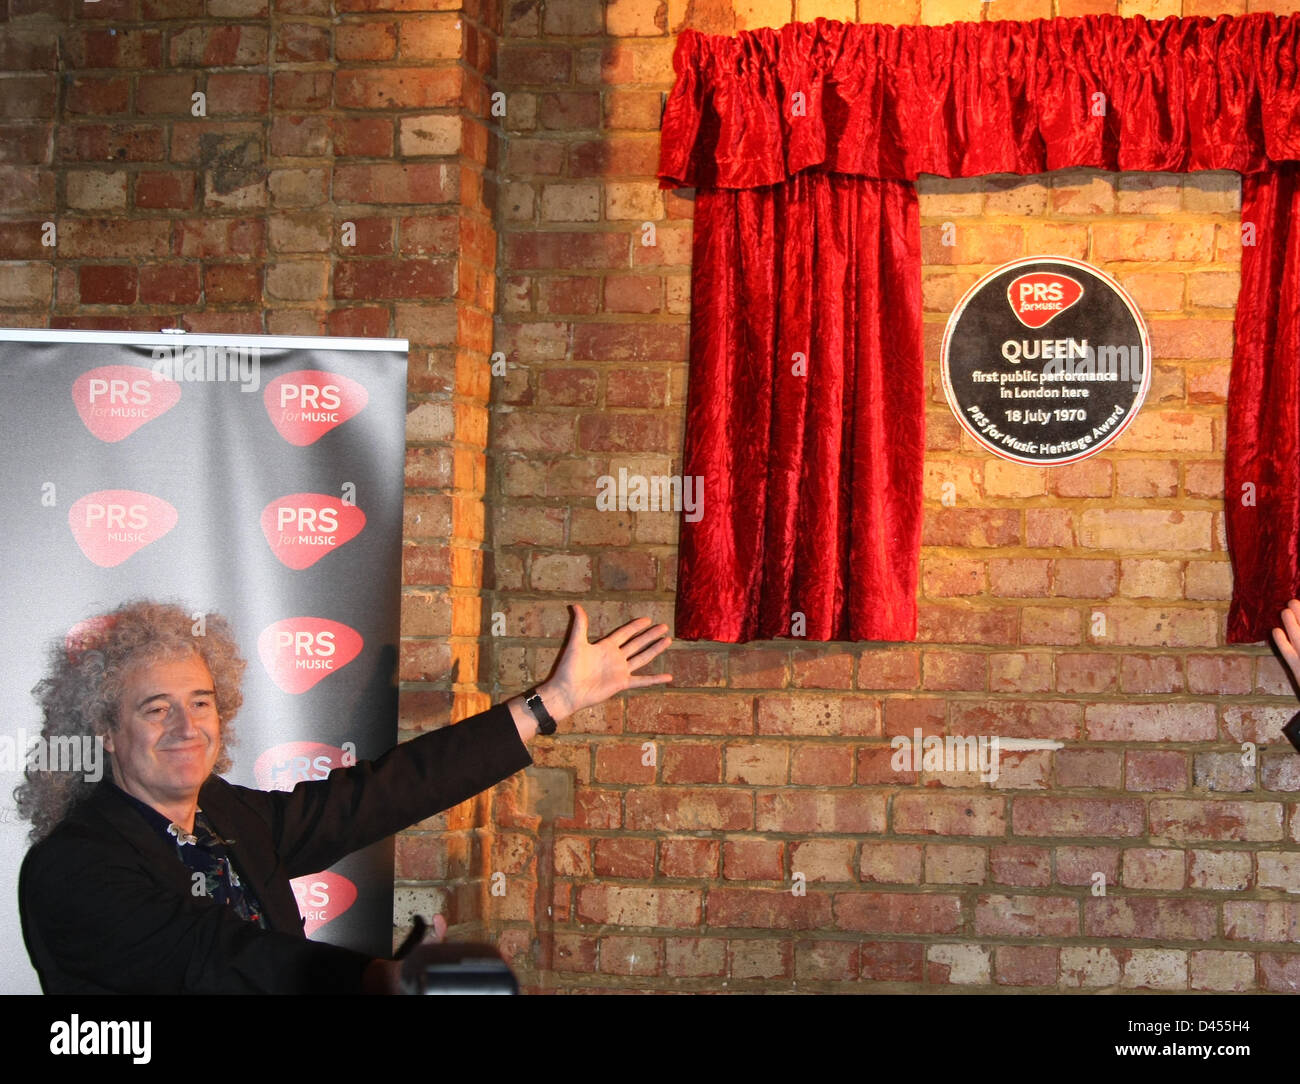 BRIAN MAY PRS FOR MUSIC HONOURS QUEEN WITH A HERITAGE AWARD IMPERIAL COLLEGE LONDON  UK 05 March 2013 - Stock Image